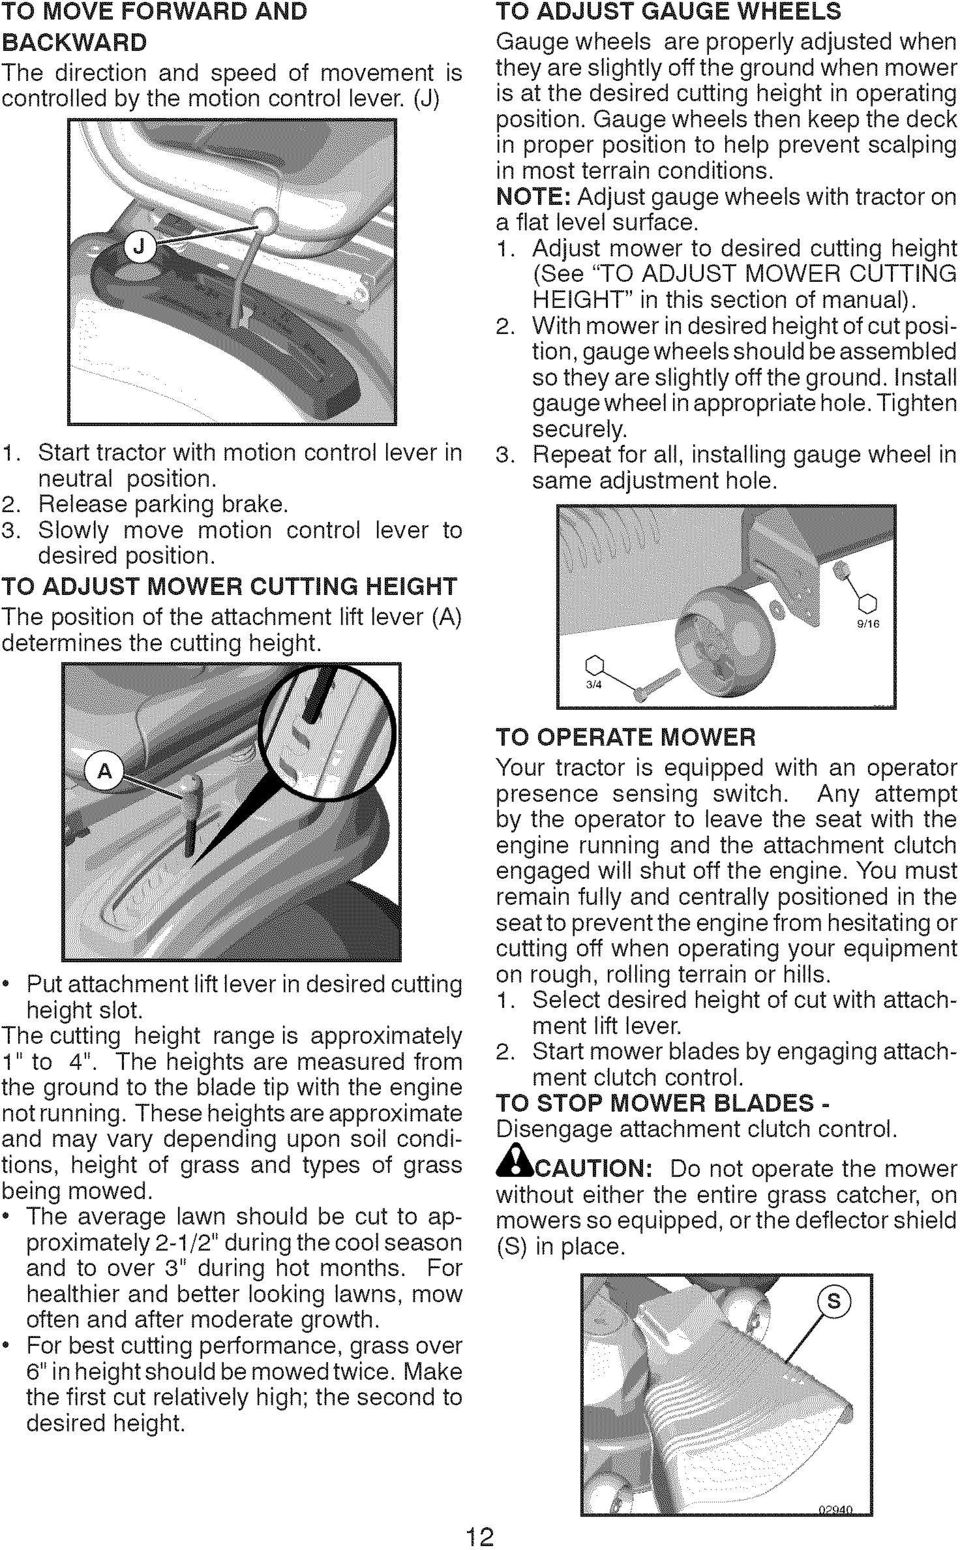 lift lever (A) TO ADJUST GAUGE WHEELS Gauge wheels are properly adjusted when they are slightly offthe ground when mower is at the desired cutting height in operating position.